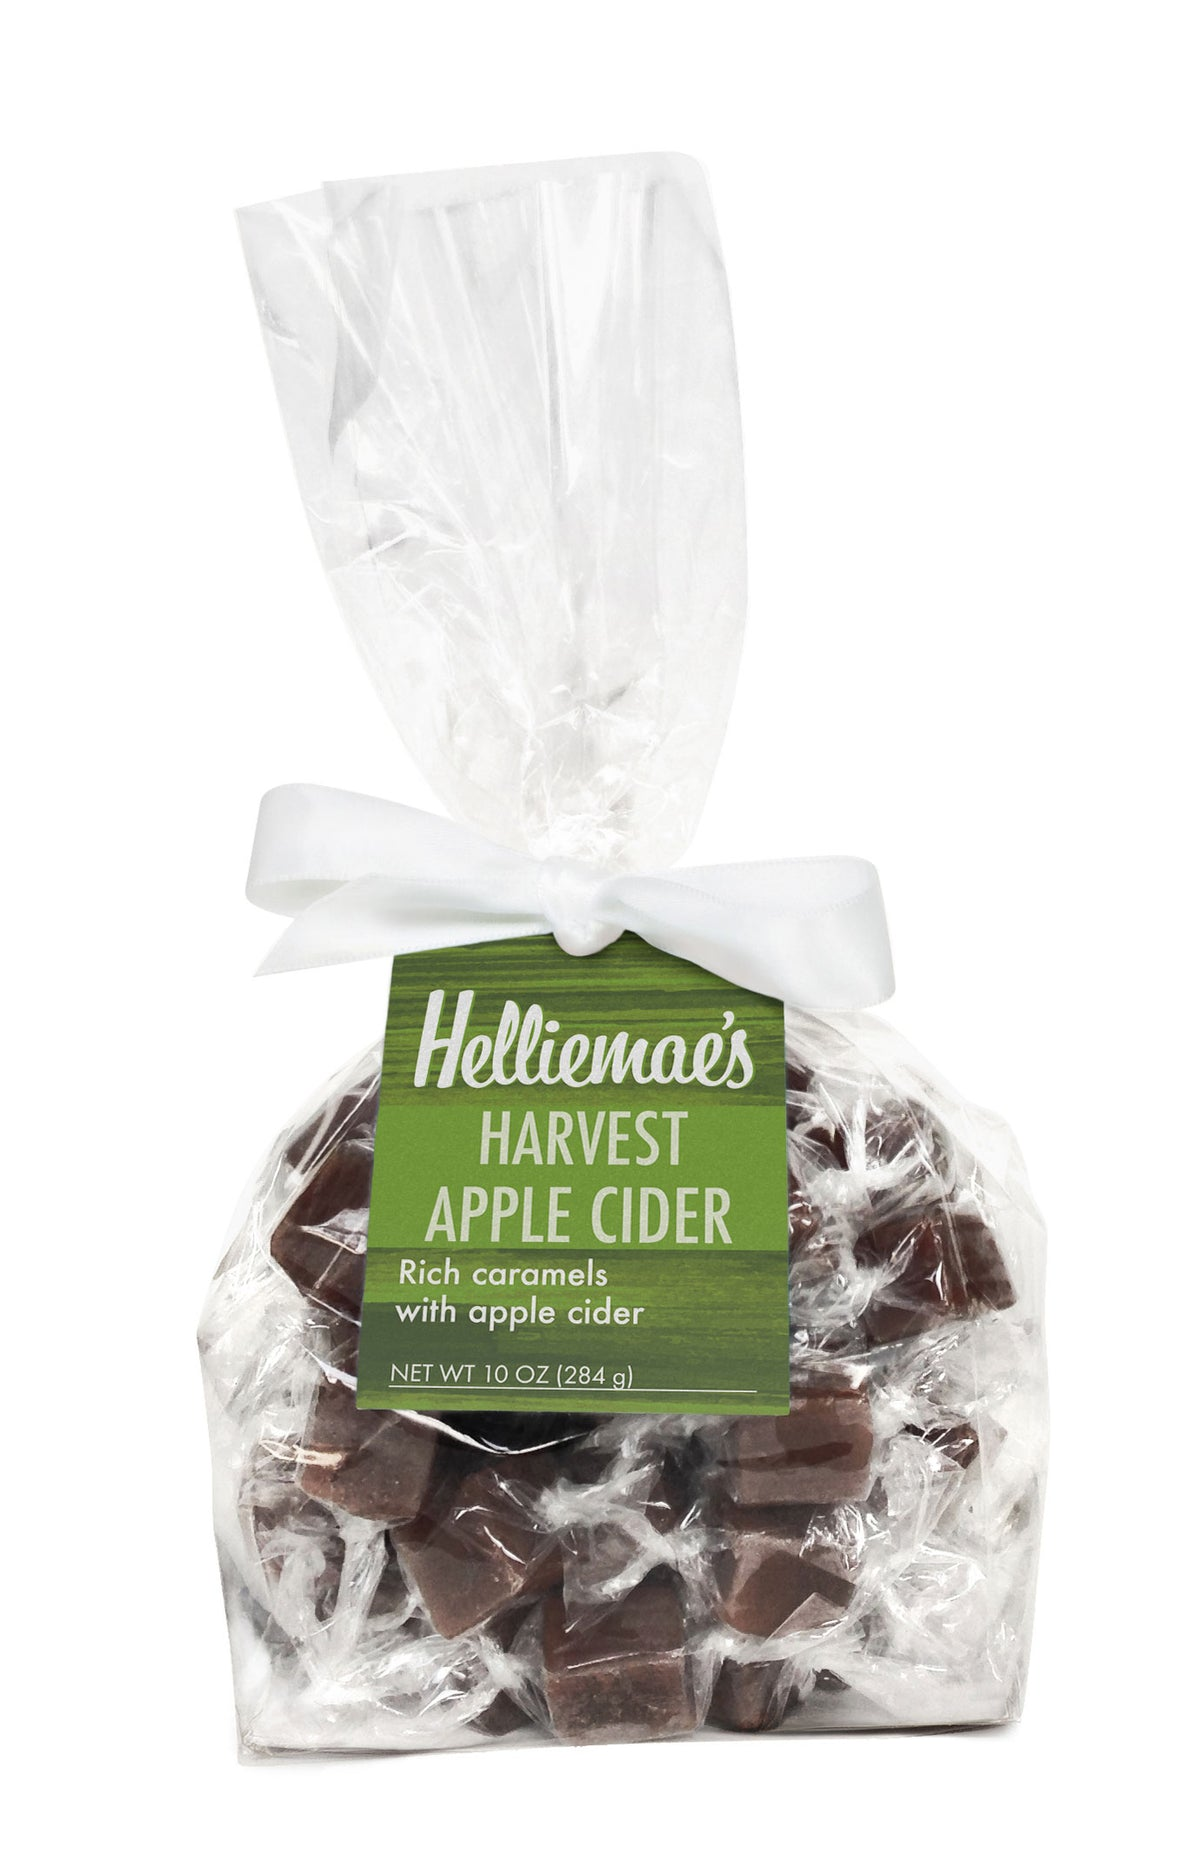 Helliemae's Harvest Apple Cider Caramels large gift bag, clear cello bag with gathered top, fastened with white satin ribbon and colorful green hangtag, with effect of milk paint on a barn wall.